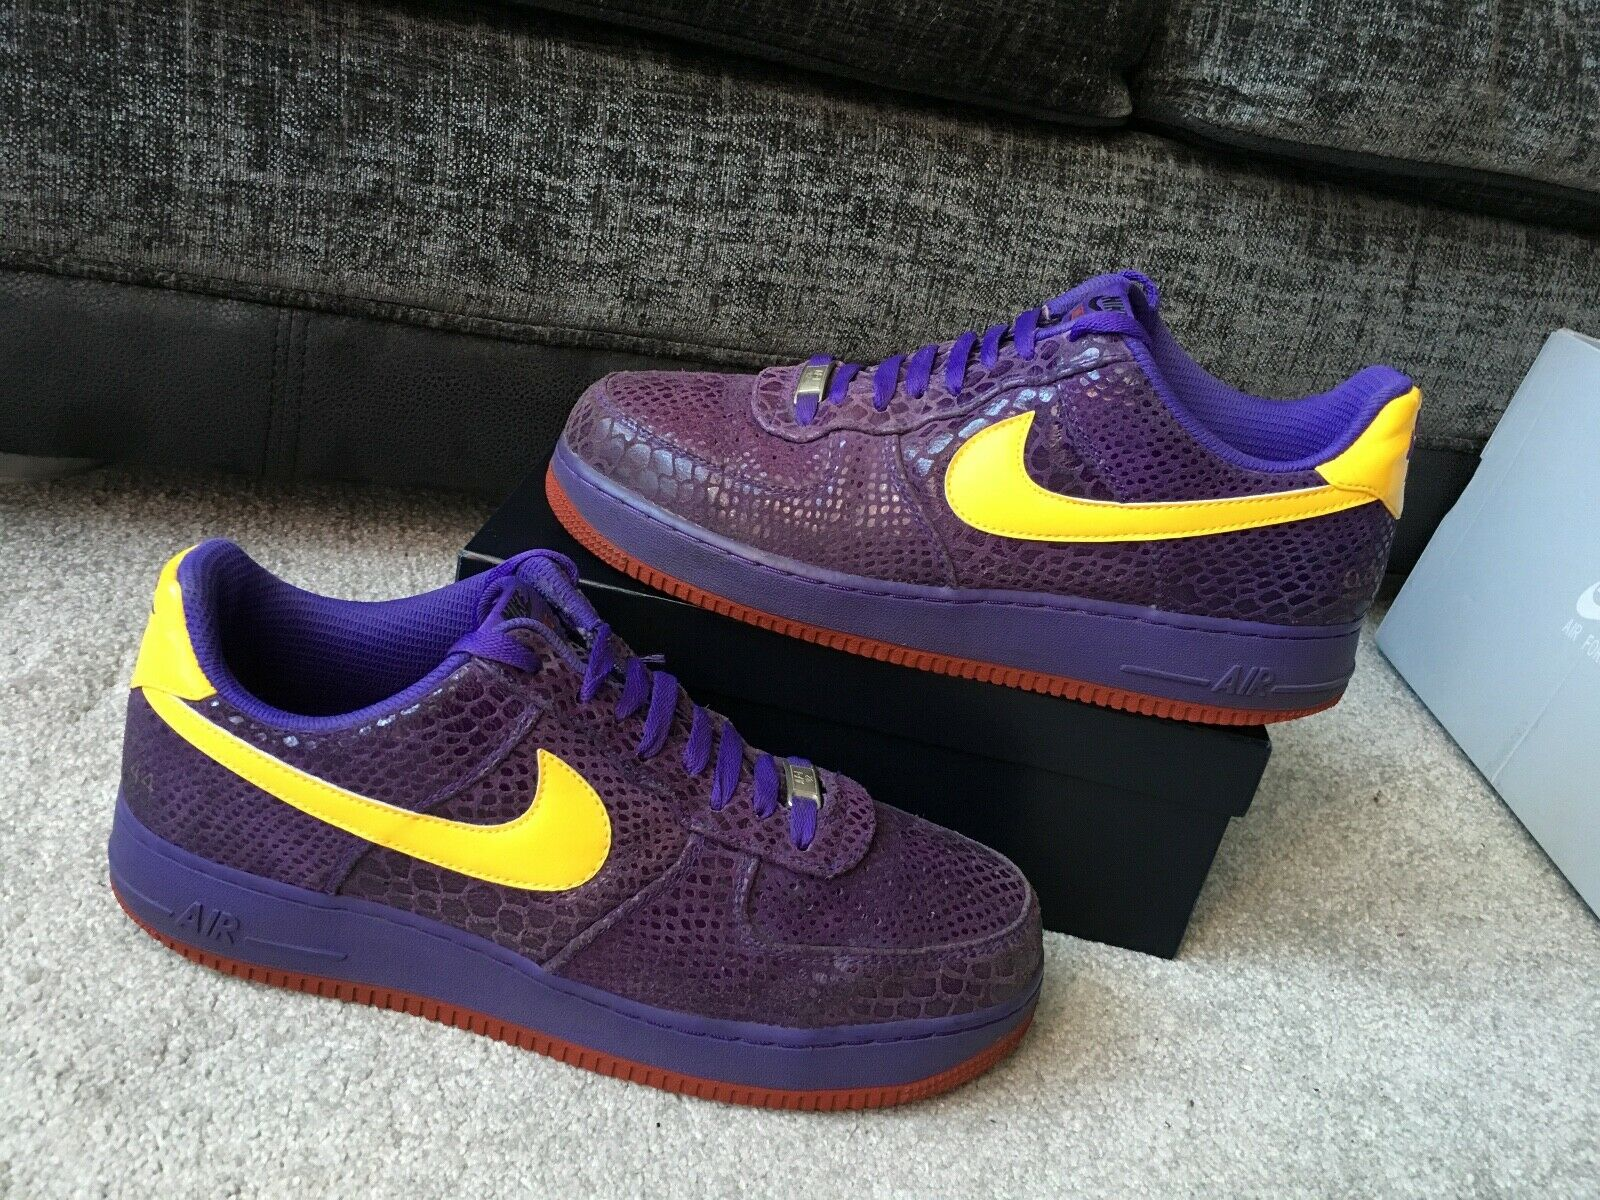 Nike West Air AF1 -82 0.44 Sticky Rubber, premium, limited trainers Eur 45